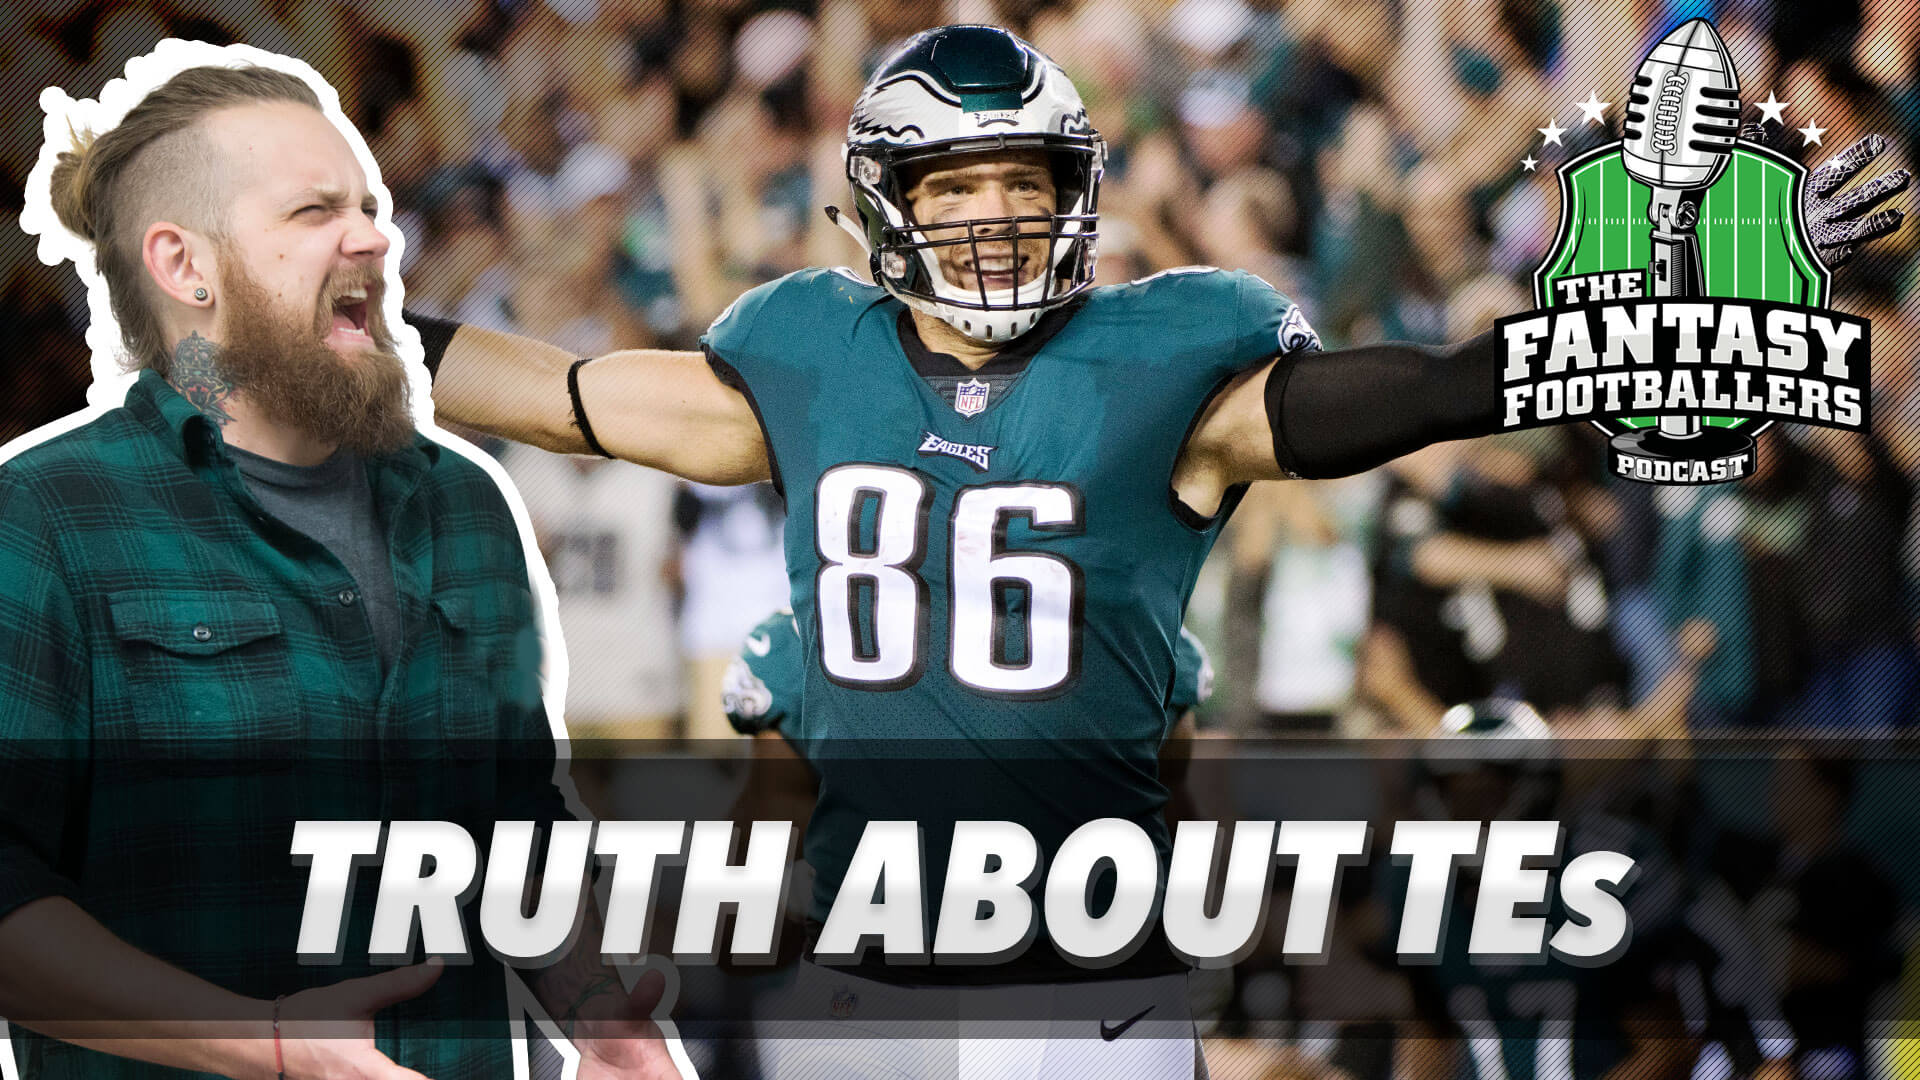 The TRUTH About Fantasy TEs in 2017 - Ep. #517